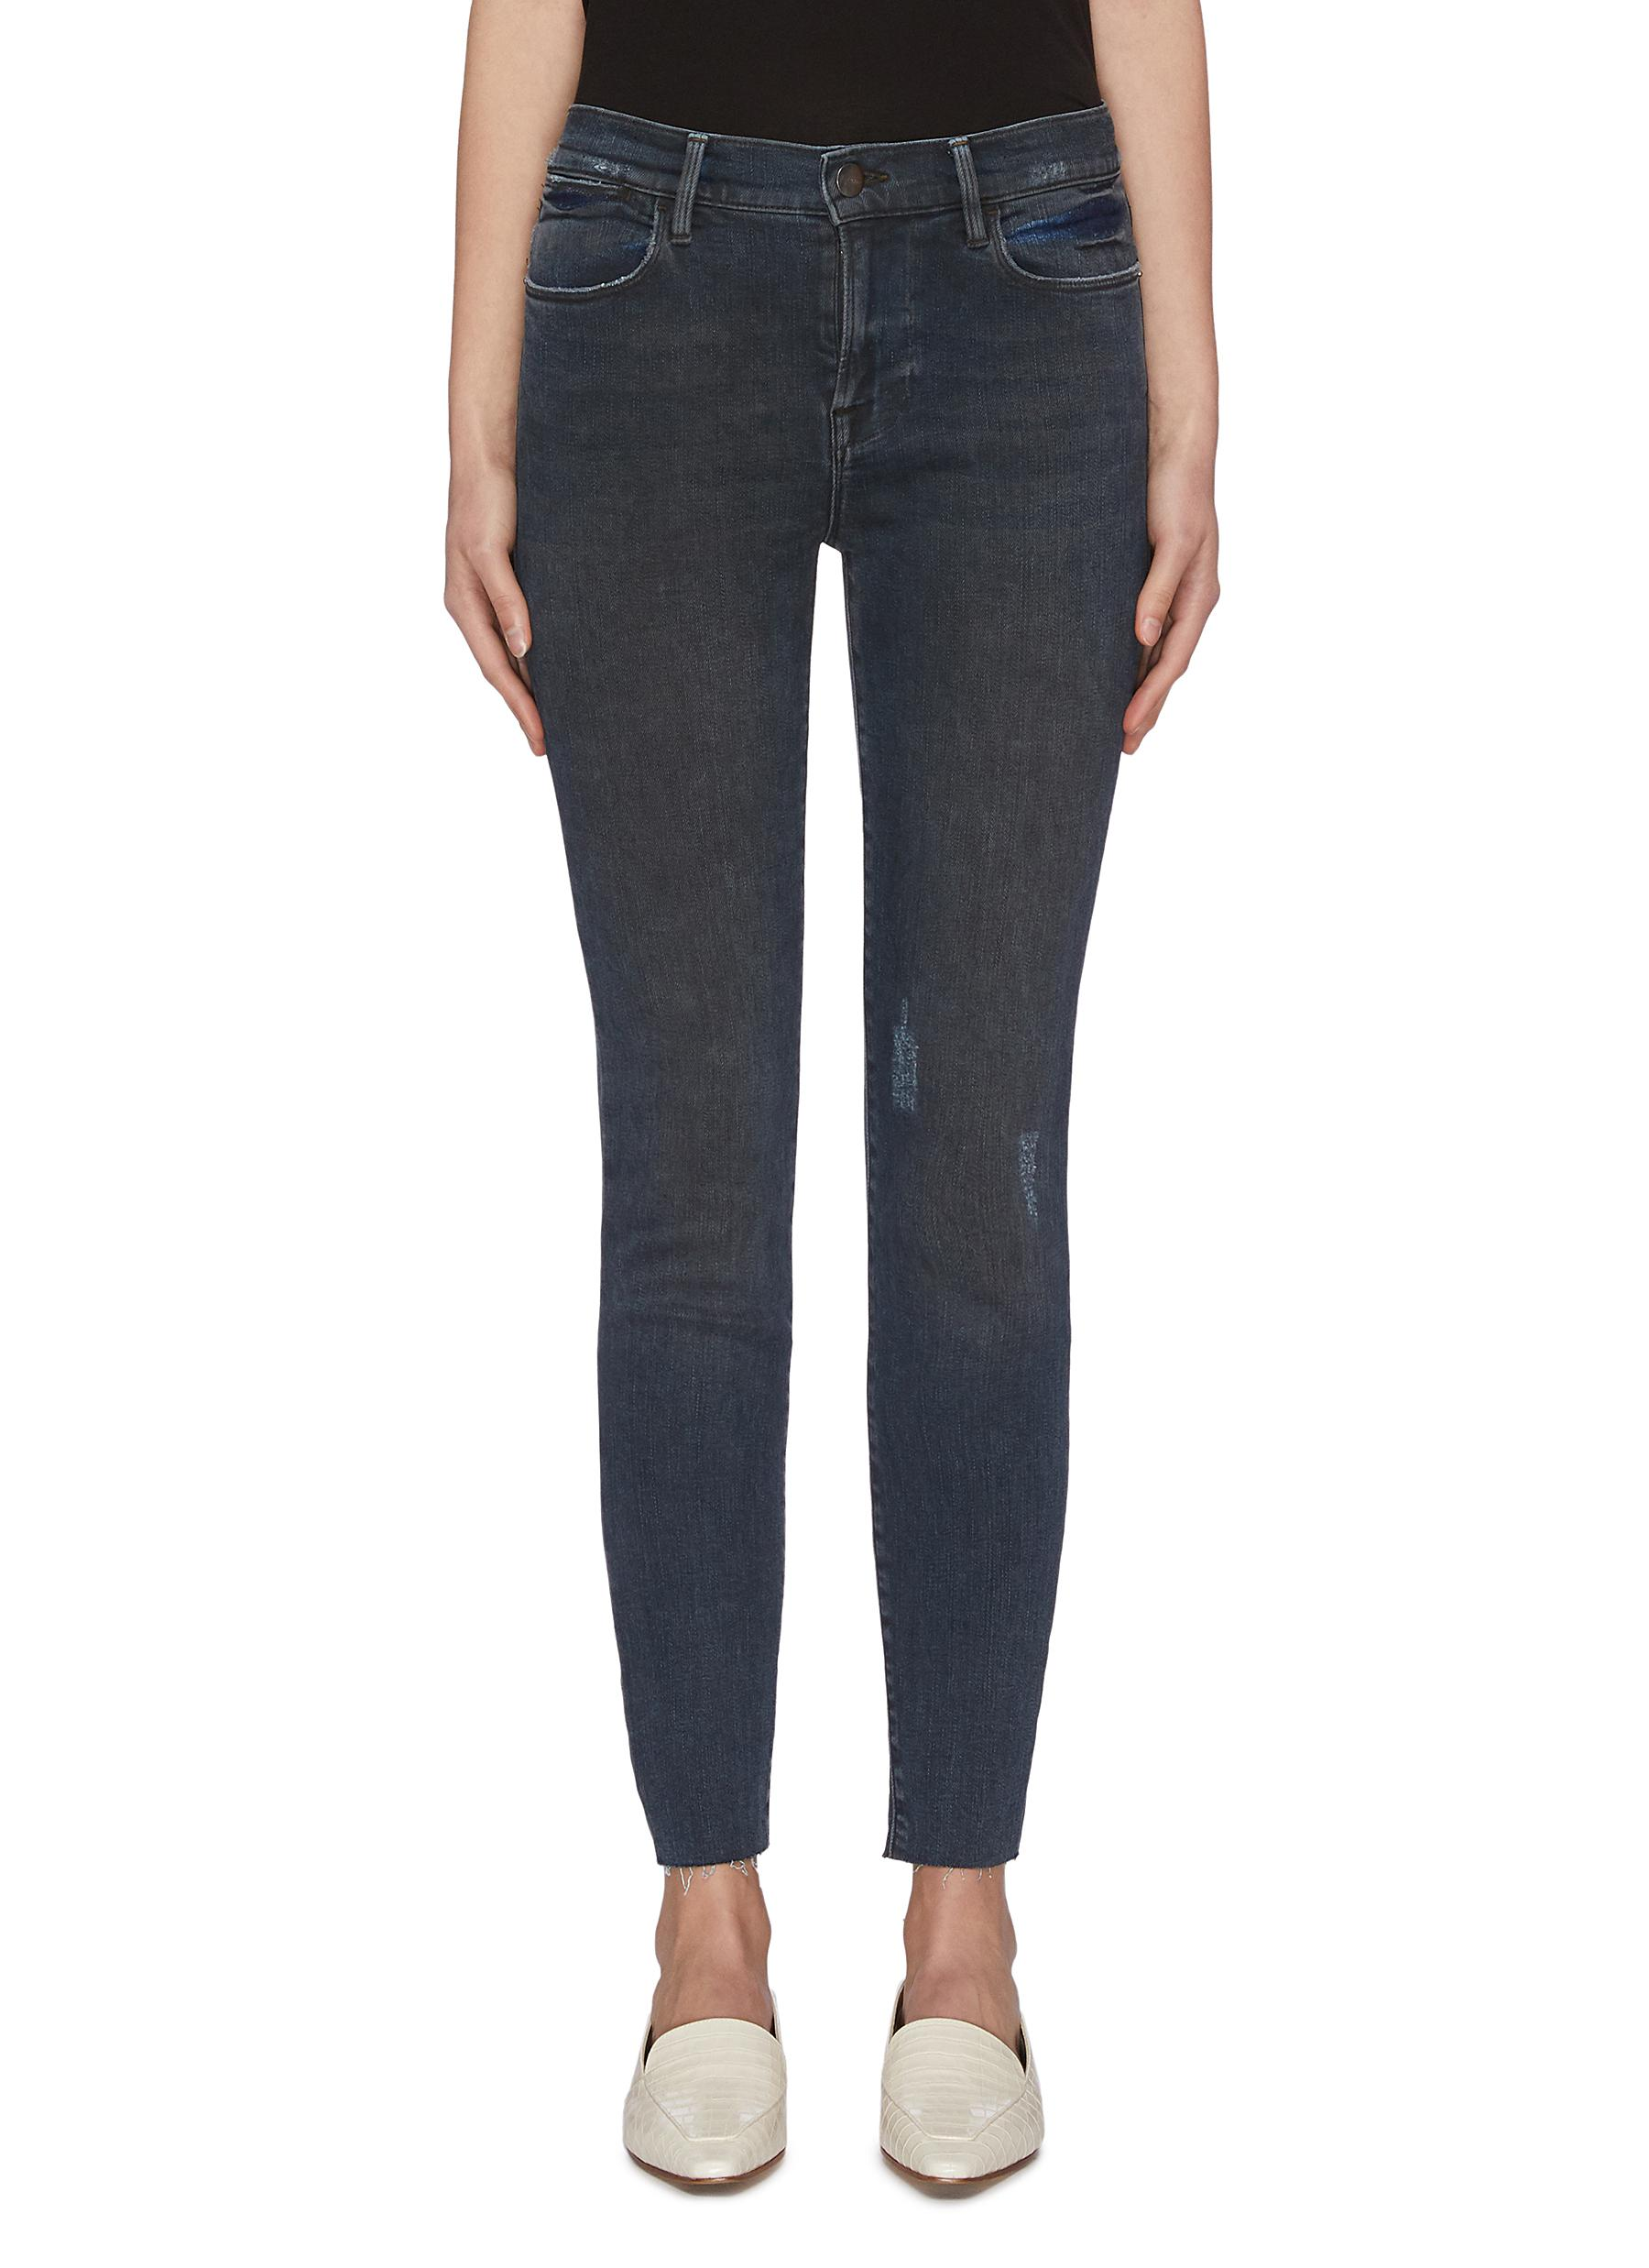 Buy Frame Denim Jeans 'Le High Skinny Hr' dark wash raw edge jeans